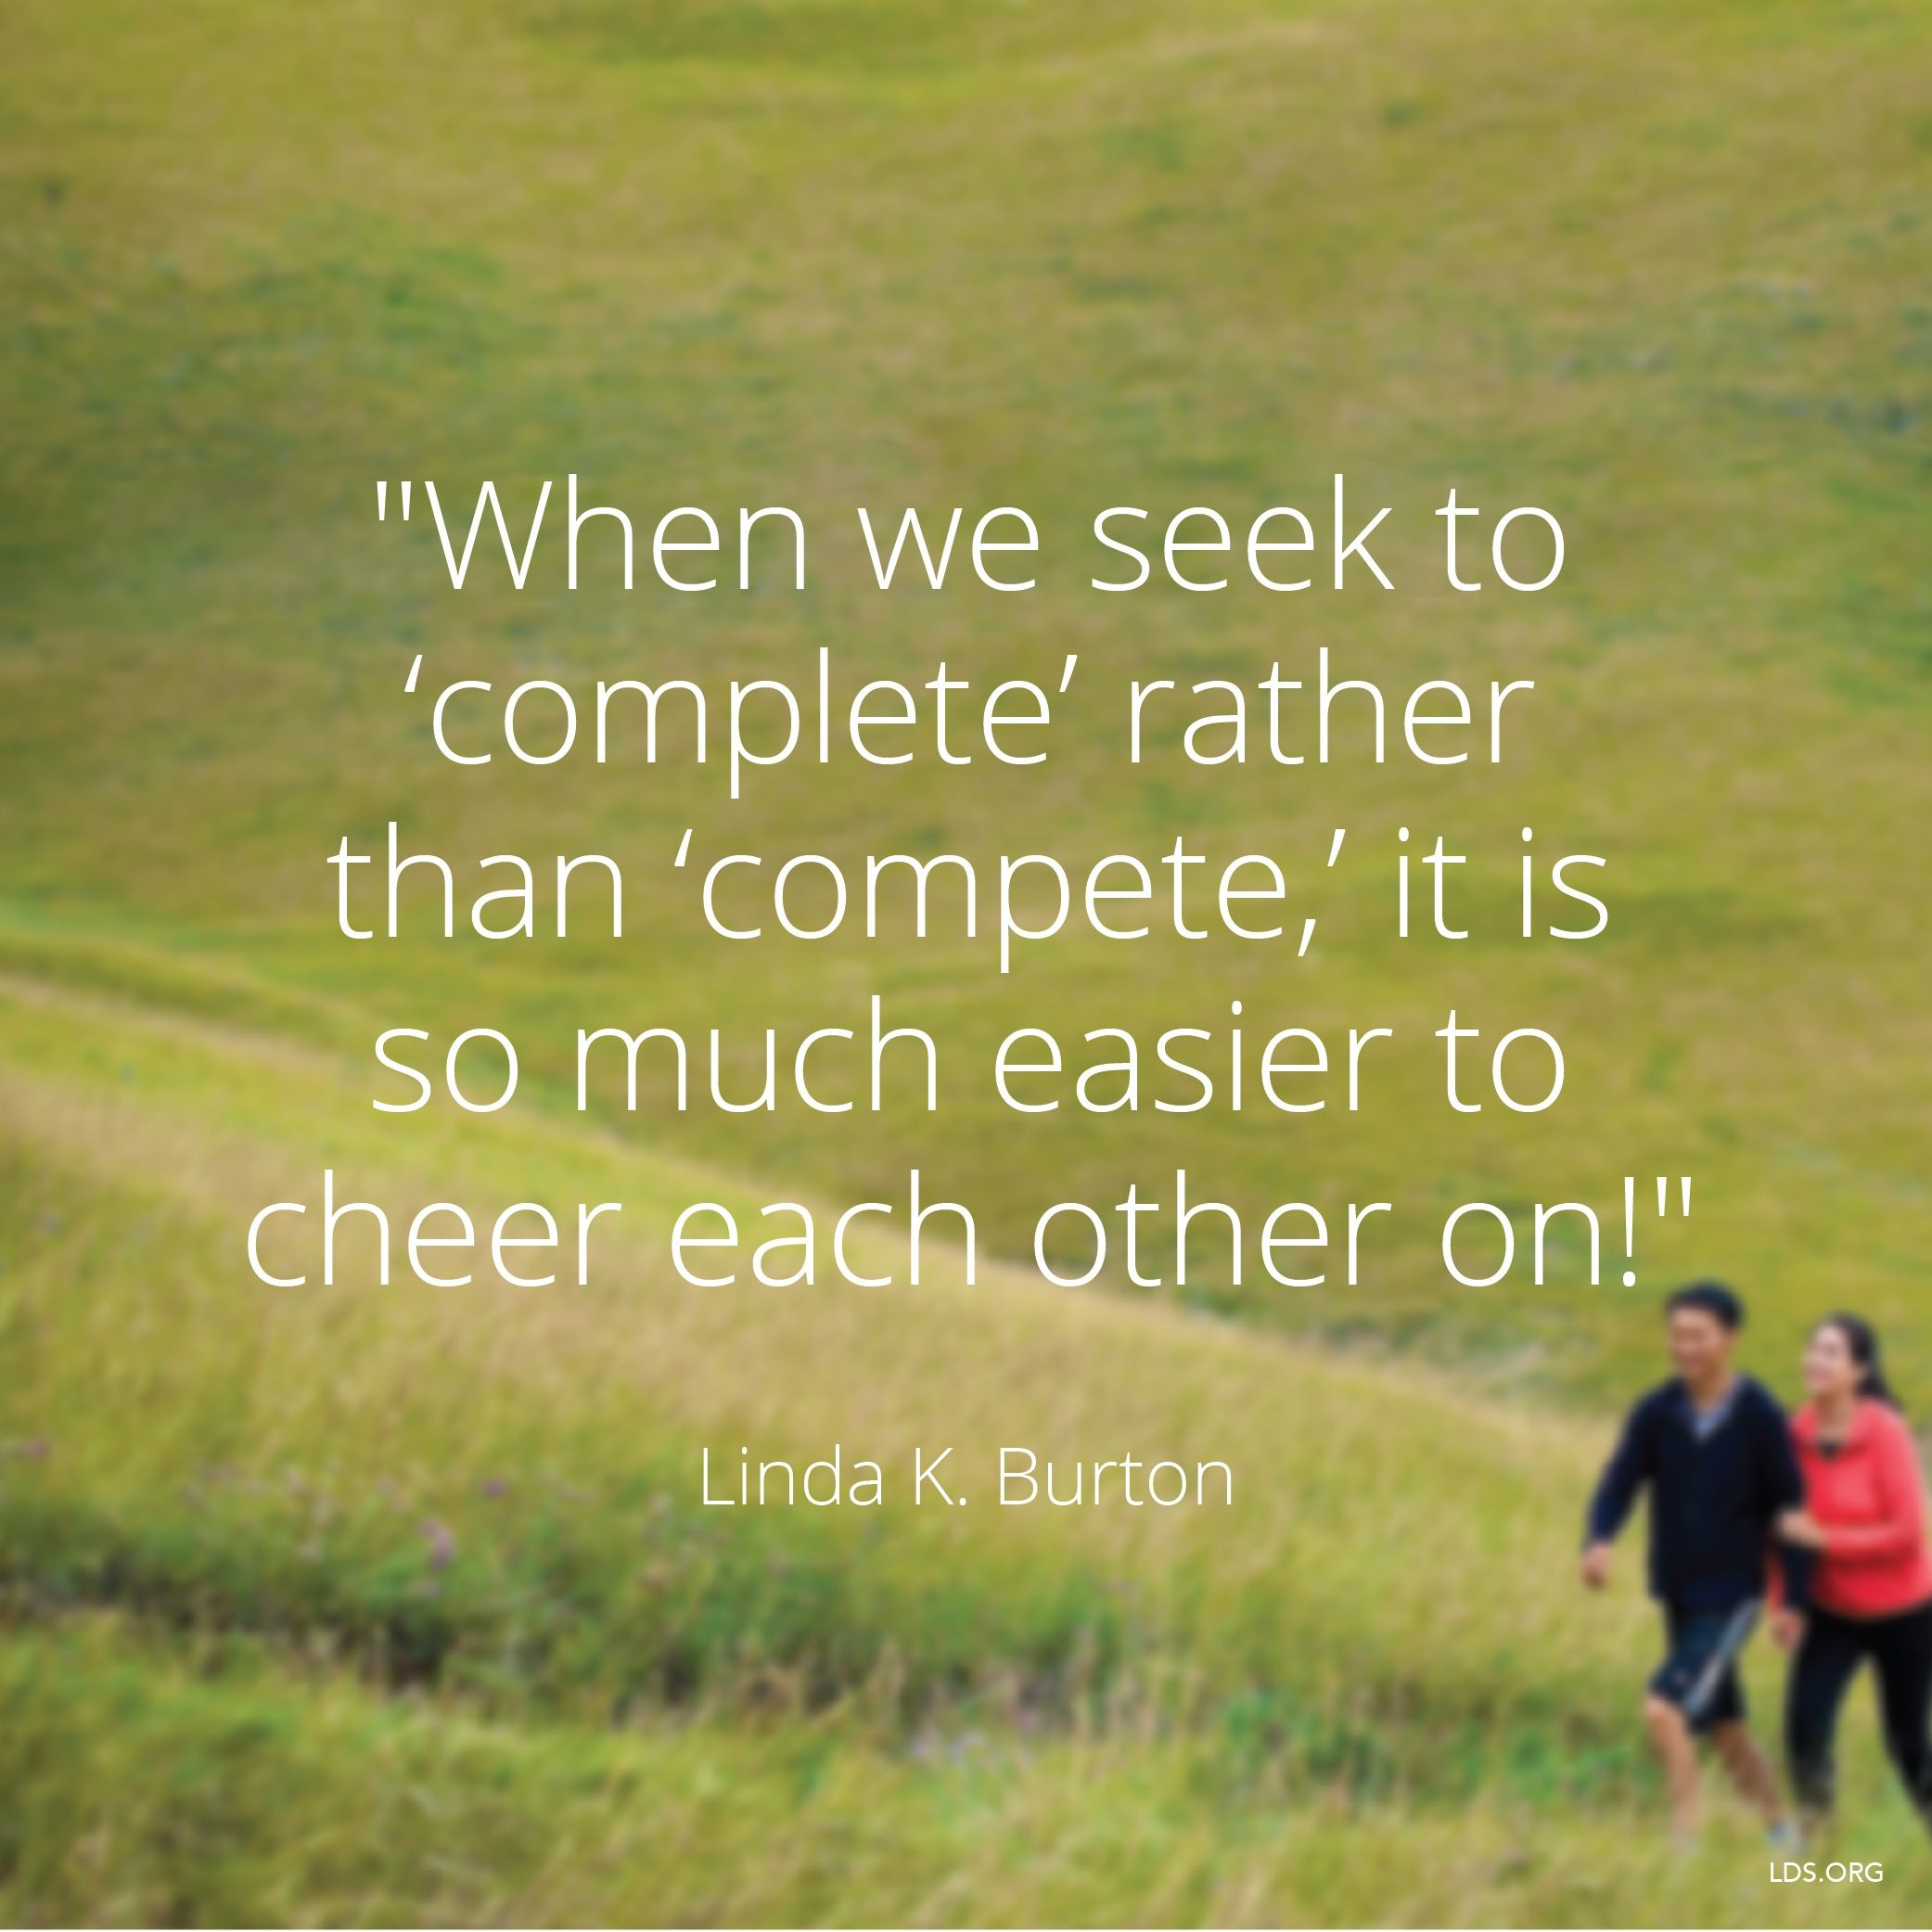 """""""When we seek to 'complete' rather than 'compete,' it is so much easier to cheer each other on!""""—Sister Linda K. Burton, """"We'll Ascend Together"""""""